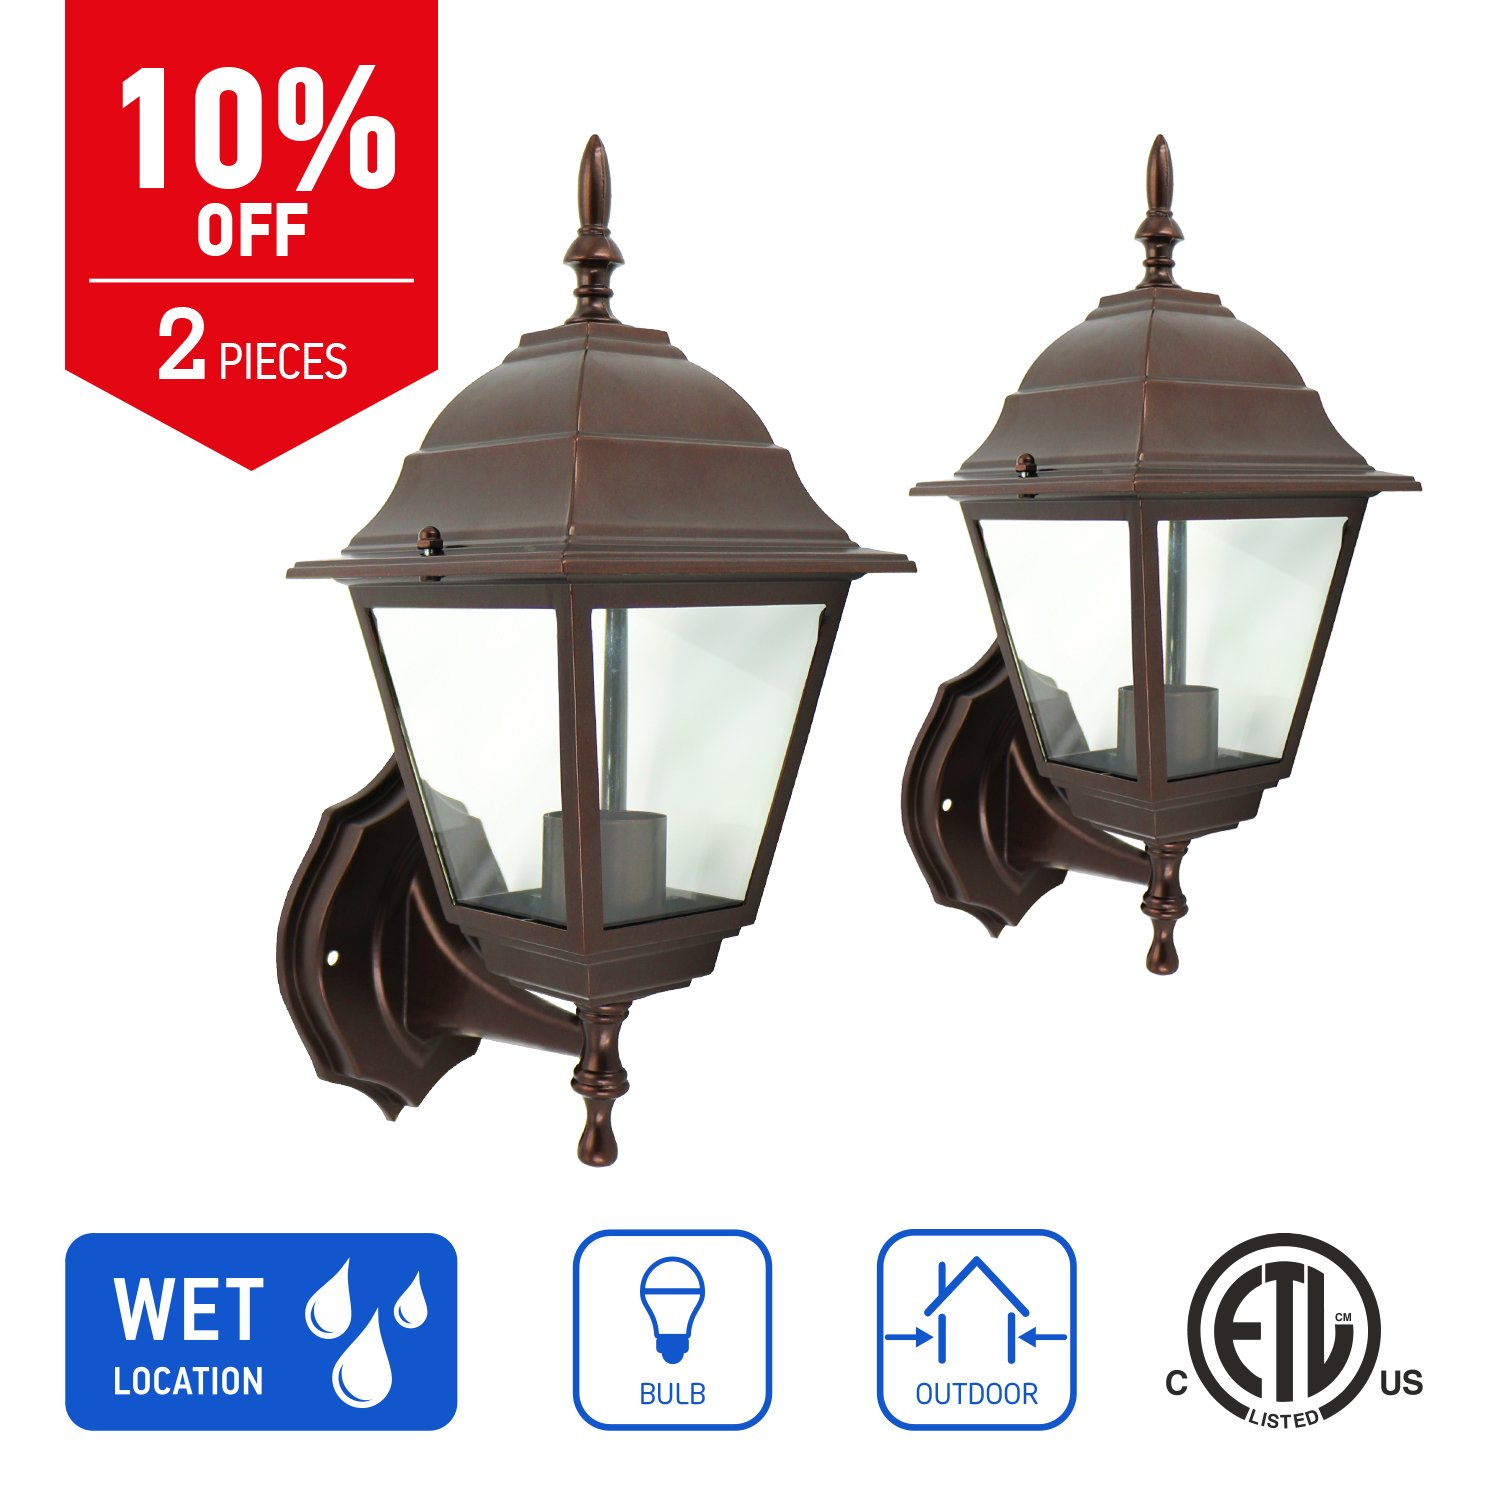 IN HOME 1-Light Outdoor Wall Mount Lantern Upward Fixture L02 Series Traditional Design Bronze Finish, Clear Glass Shade (2 Pack), ETL listed